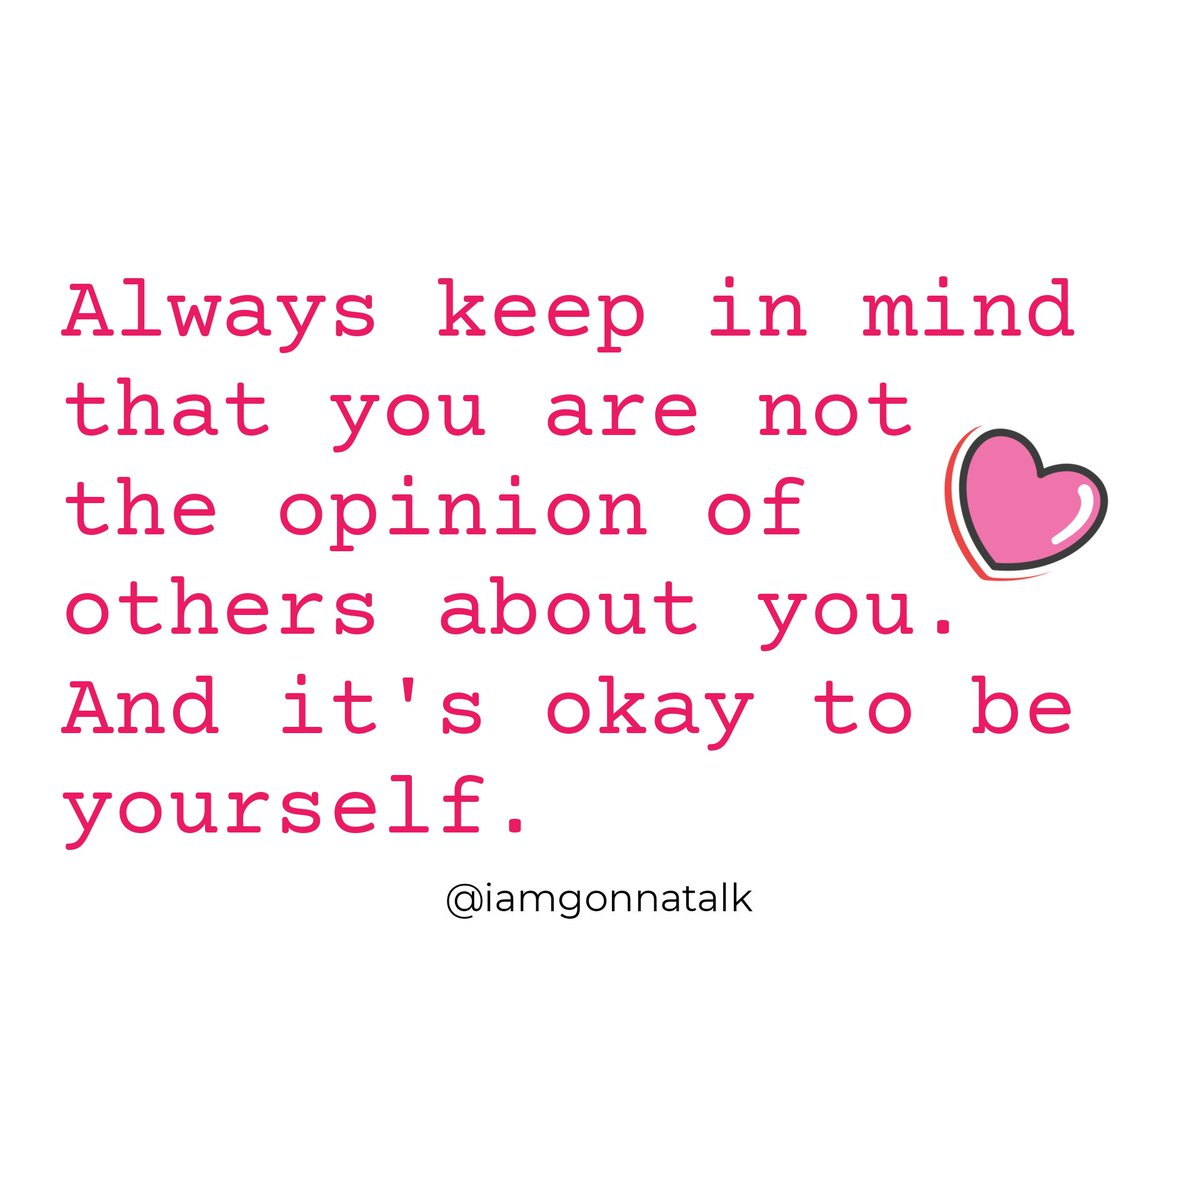 You are not the opinion of others about you. (Never forget that. Please!) #Loveyourself #respectyourself #beproudofyourself #selfhealing #Mindfulness #mentalhealth #YouMatter #iamgonnatalk #IAGTalkpic.twitter.com/yydF8am4ta